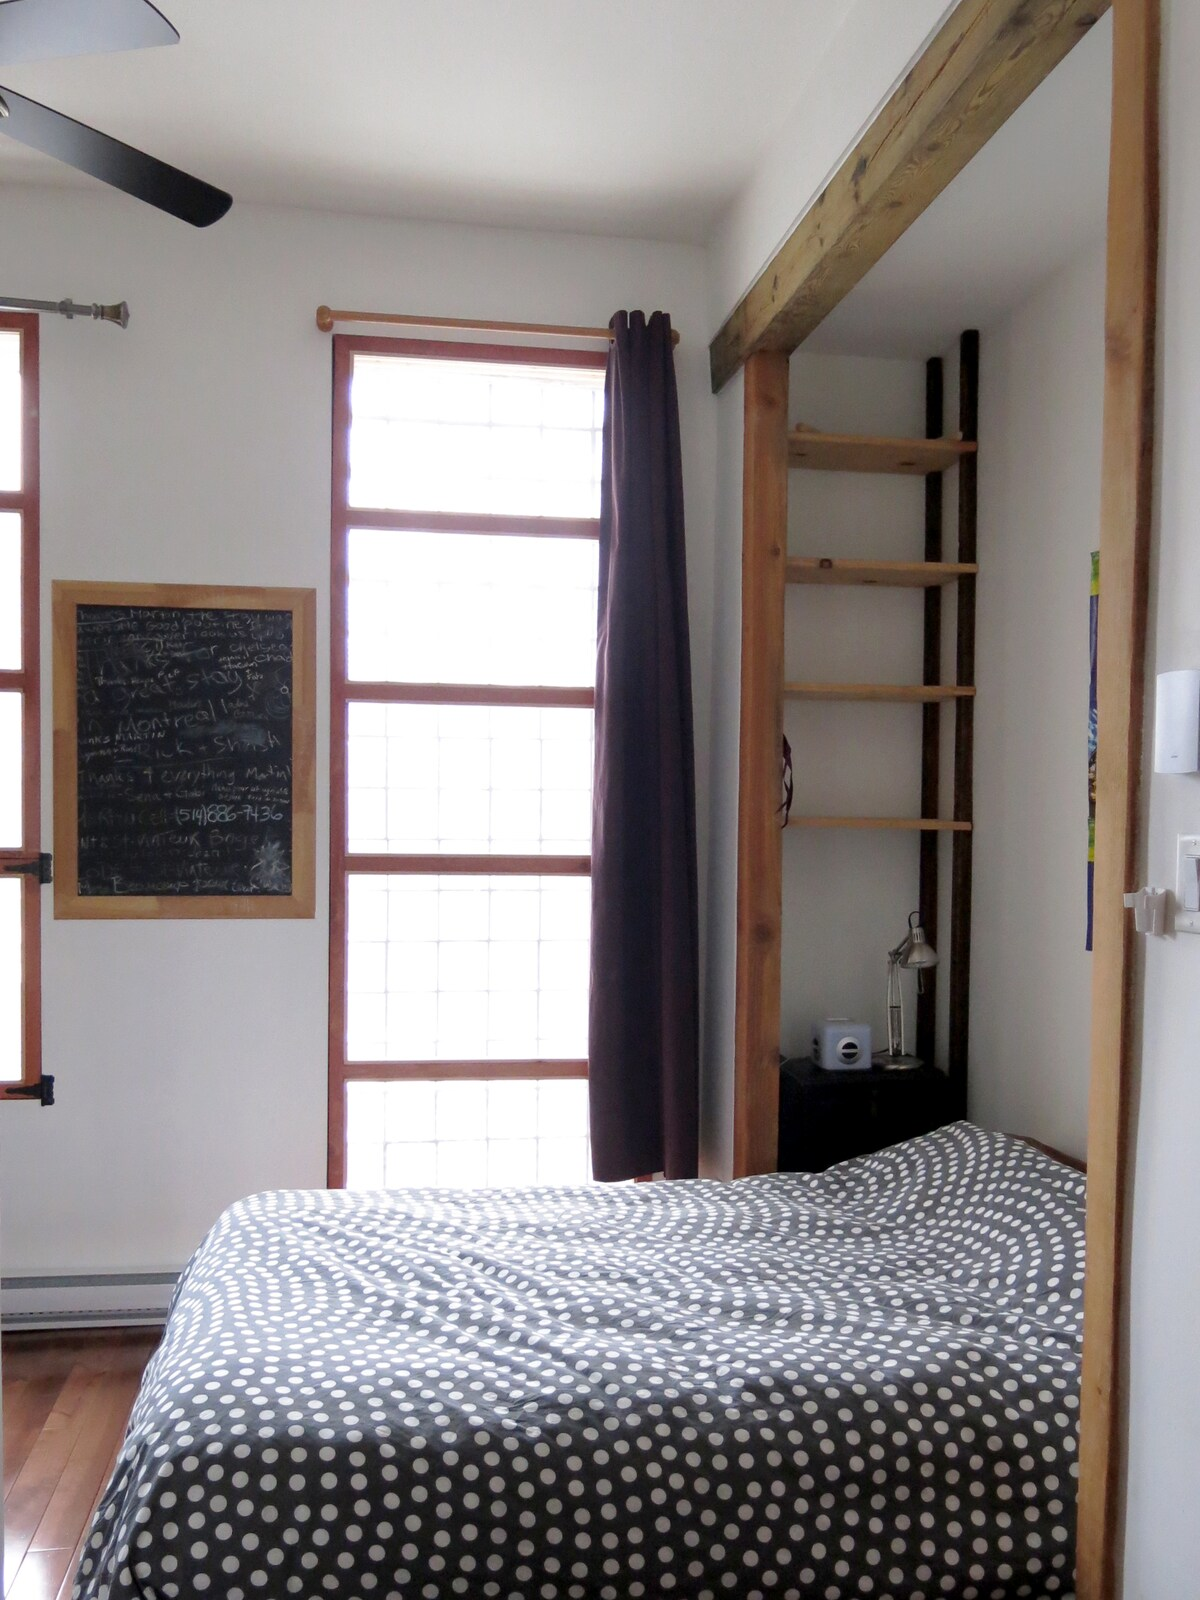 large windows in the second bedroom, exposed beams & shelves.